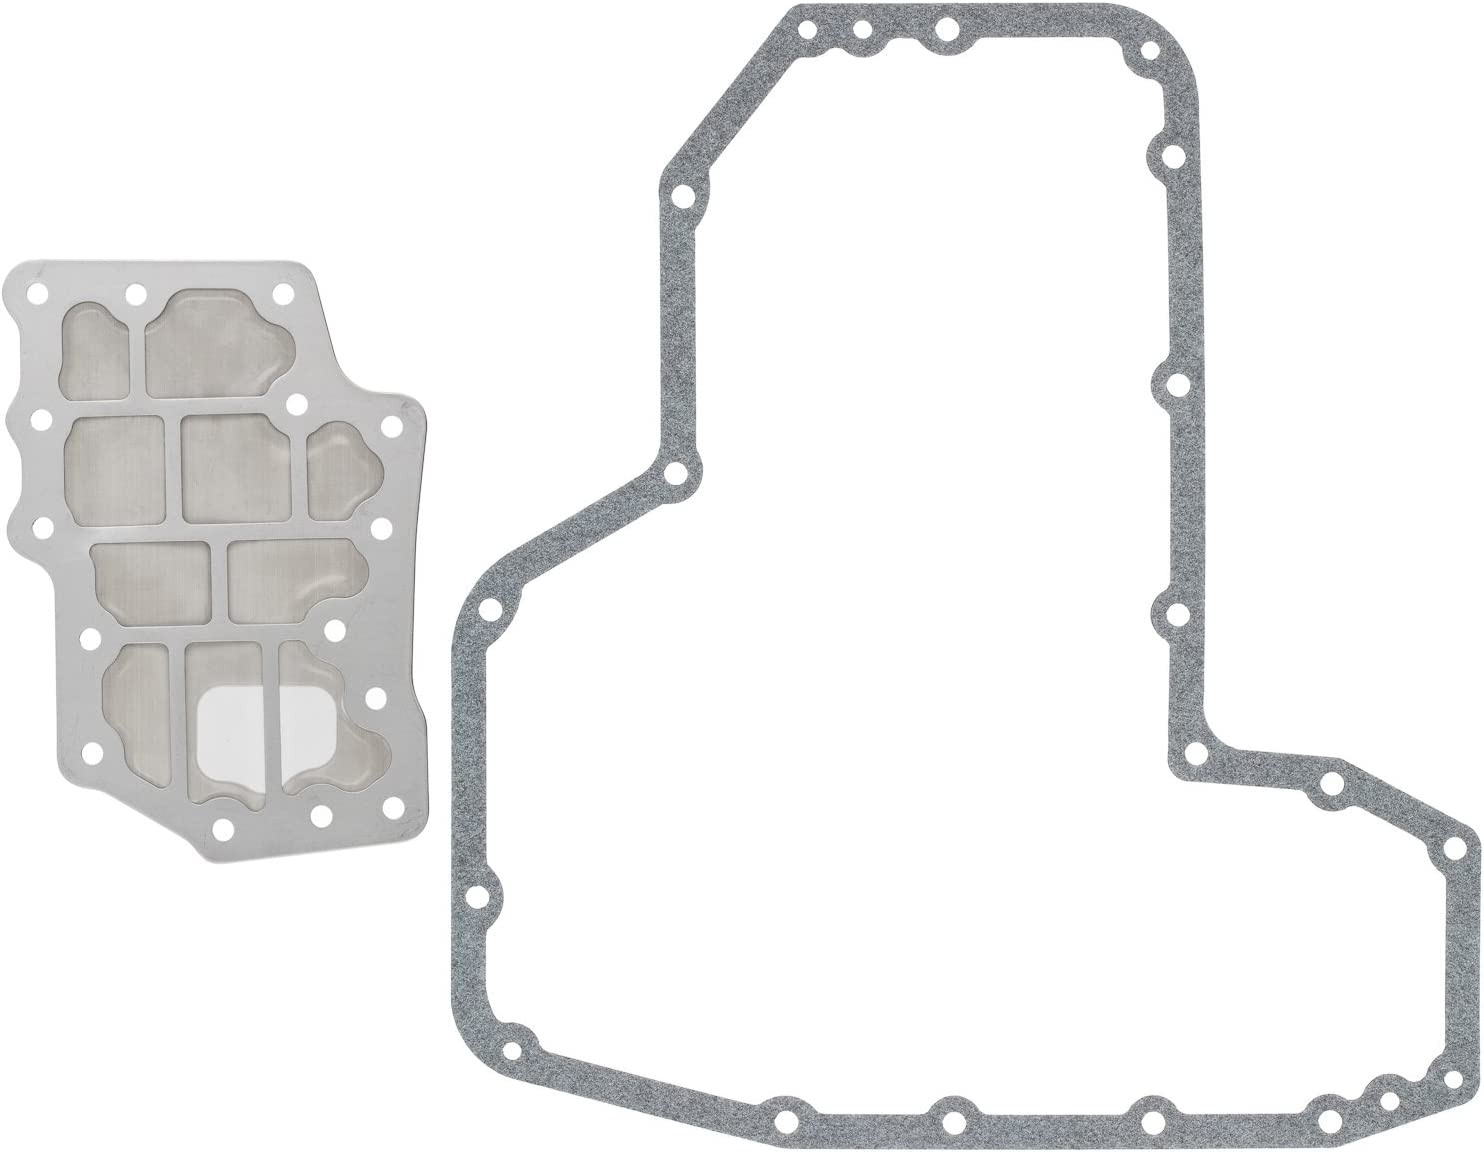 Auto Trans Filter Kit-Replacement ATP B-428 fits 03-07 Nissan Murano